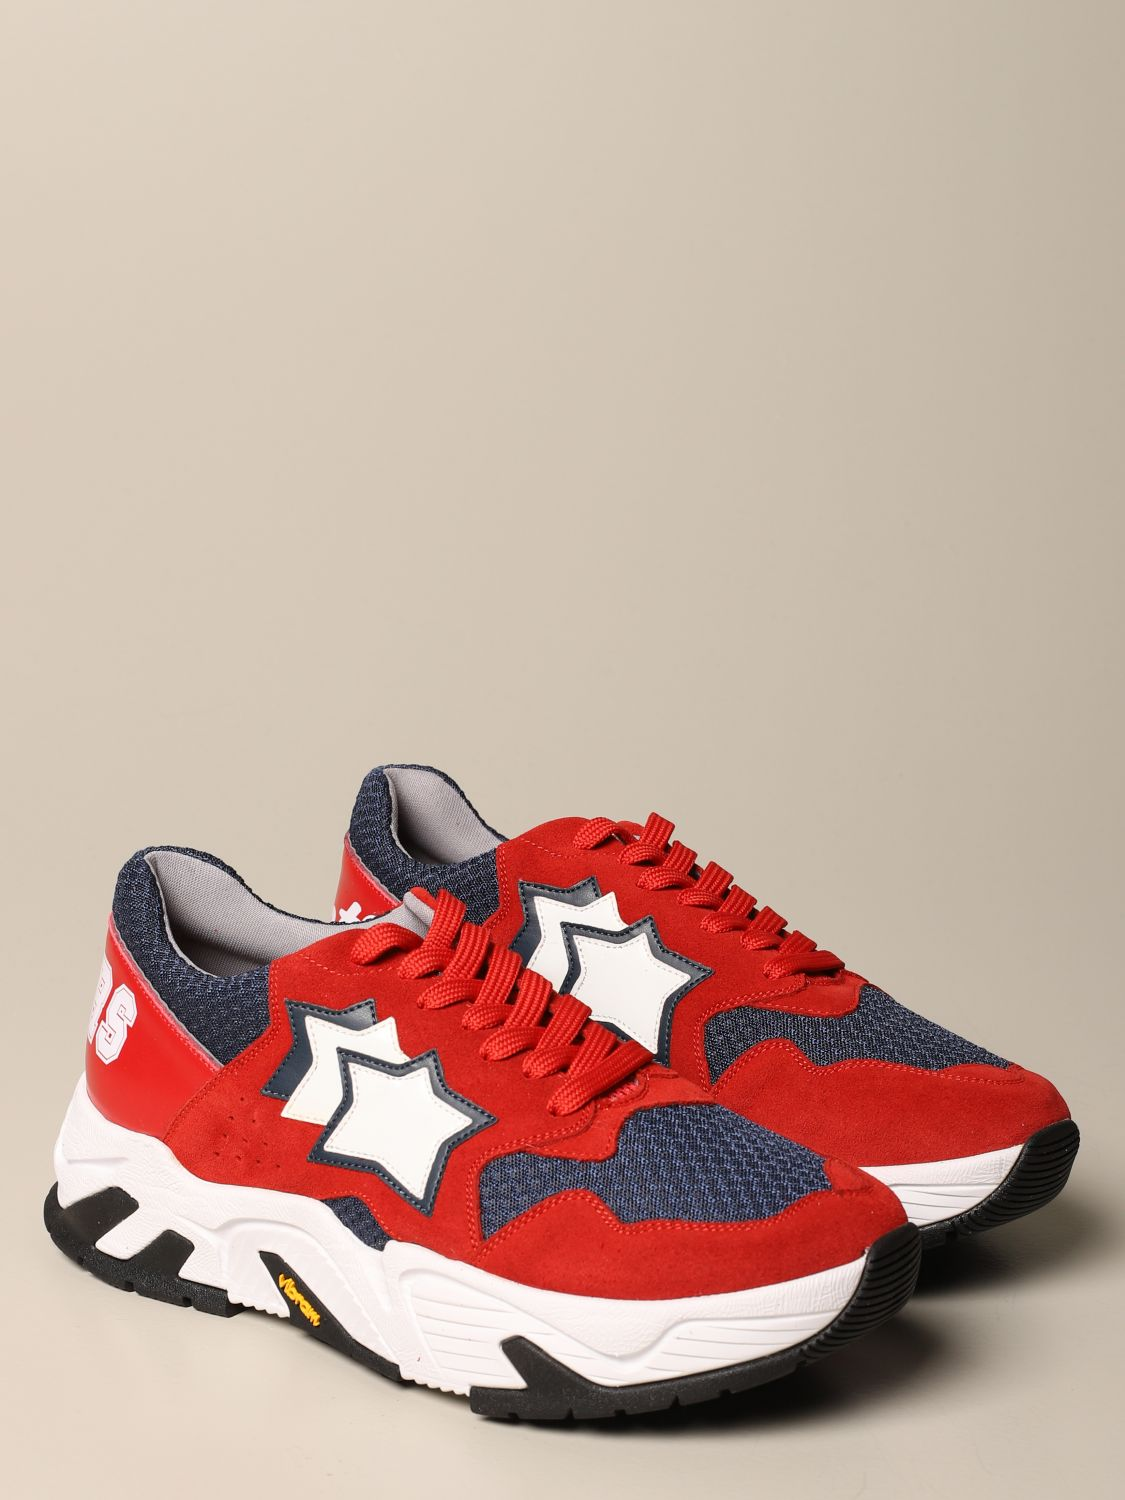 Sneakers Atlantic Stars: Sneakers herren Atlantic Stars rot 2